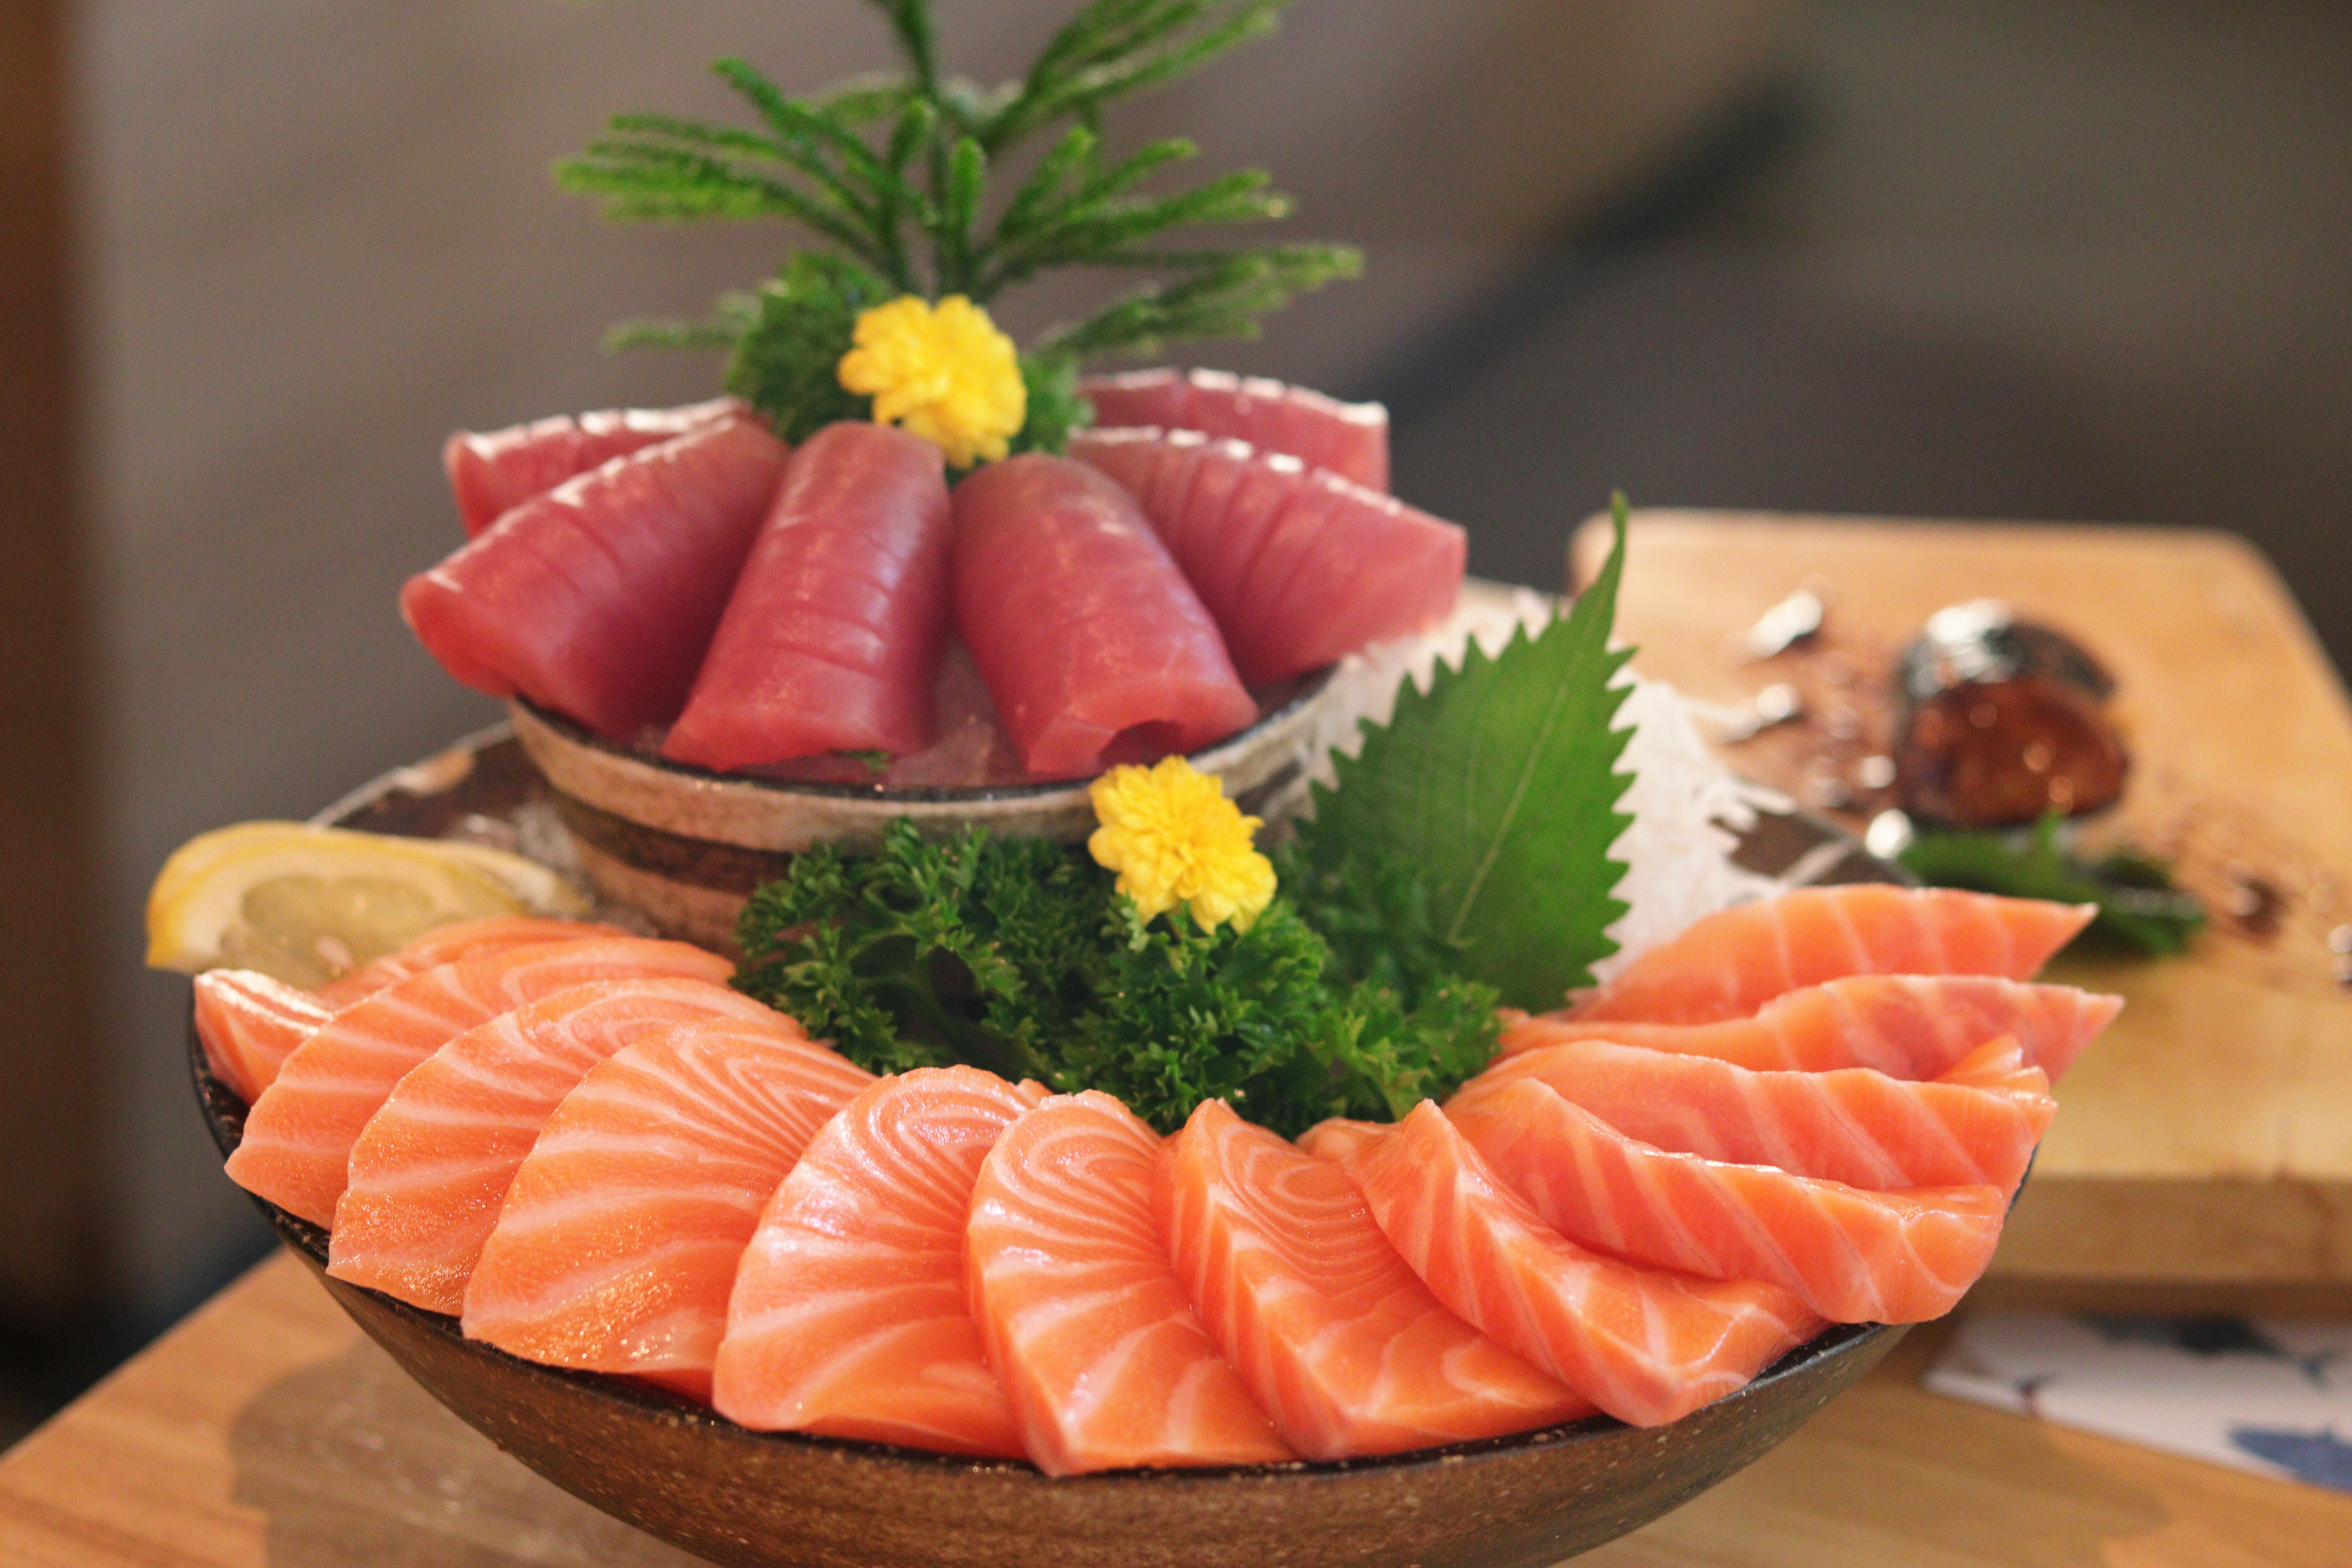 anisakis is the parasite of most concern to sashimi consumers